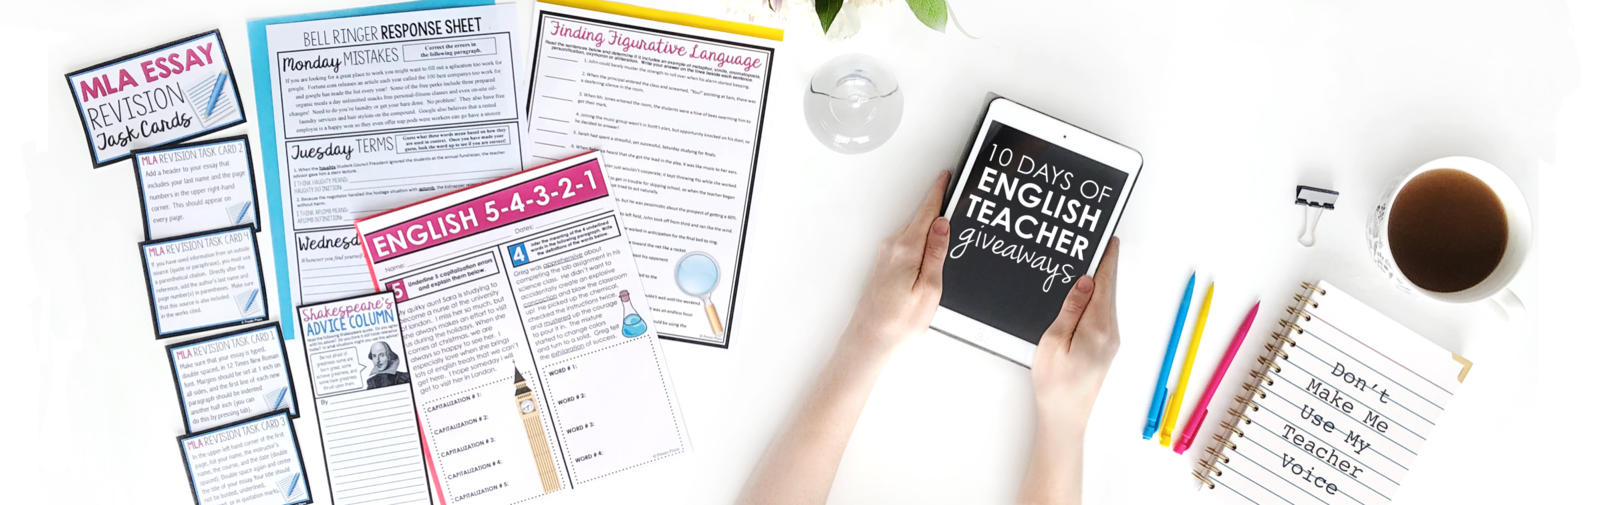 A hand holds an iPad that says 10 Days of English Teacher Giveaways.  Beside it are assignments that teachers will get if they sign up..  There are English bell ringers, MLA revision cards, figurative language, and Shakespeare assignments.